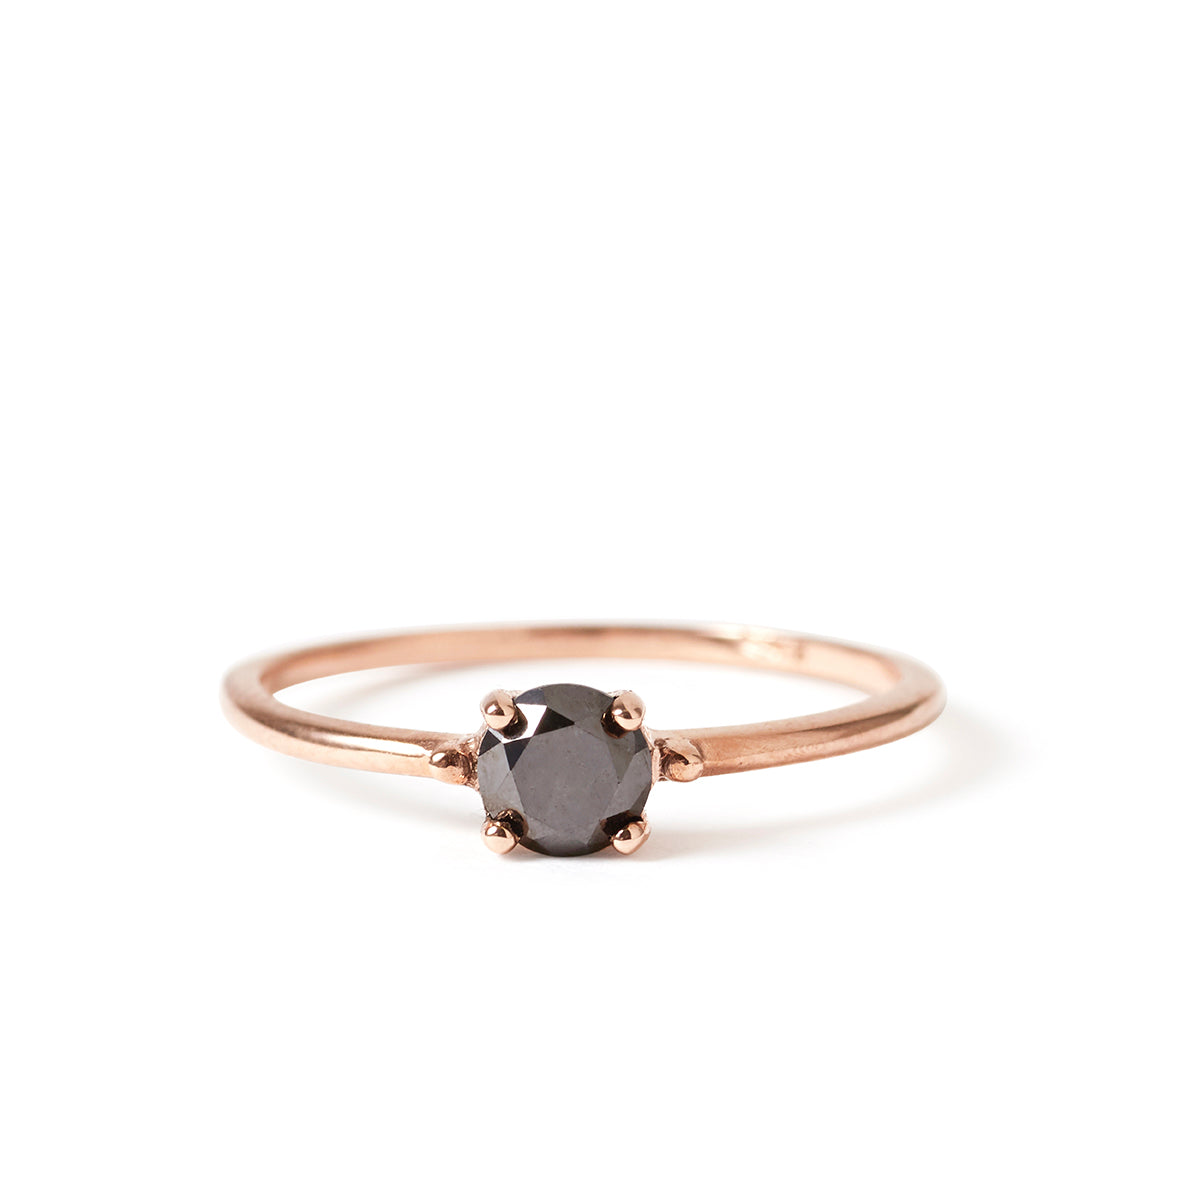 The Rose Gold & Black Diamond Skinny Joy Ring-Ring-Black Betty Design